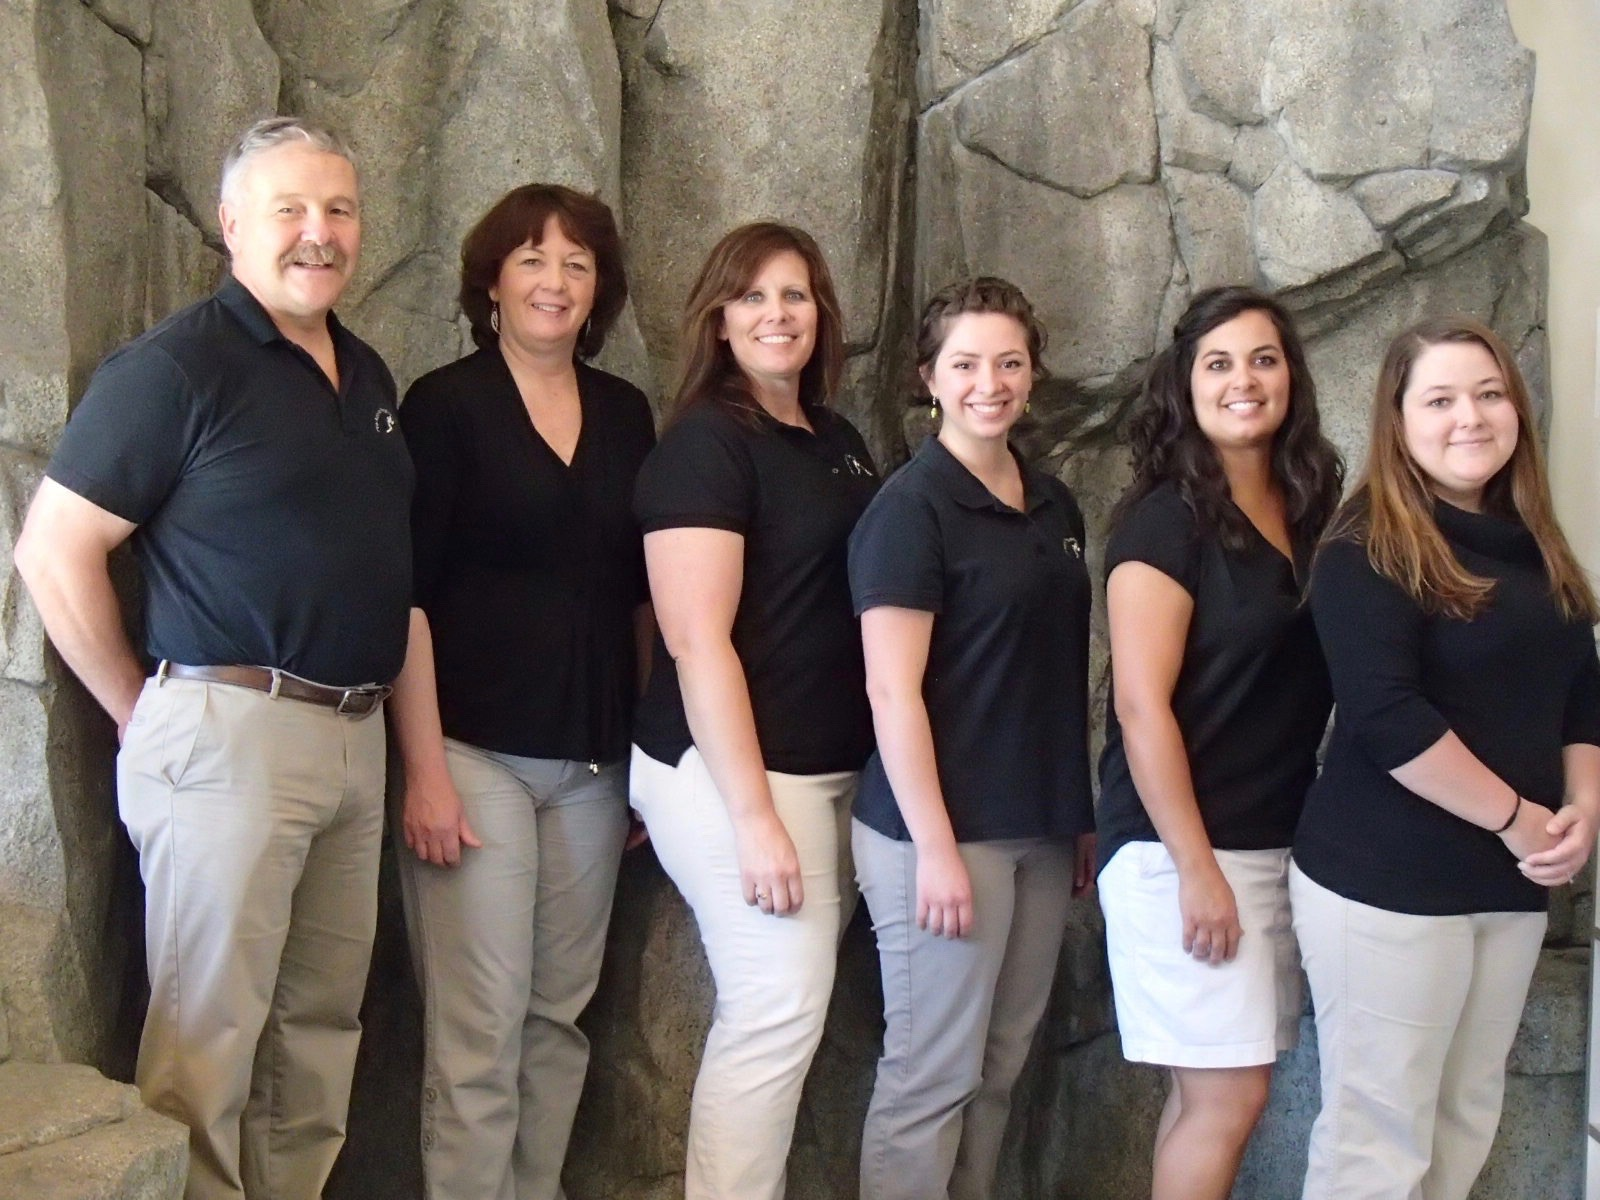 Staff at Pro-Active